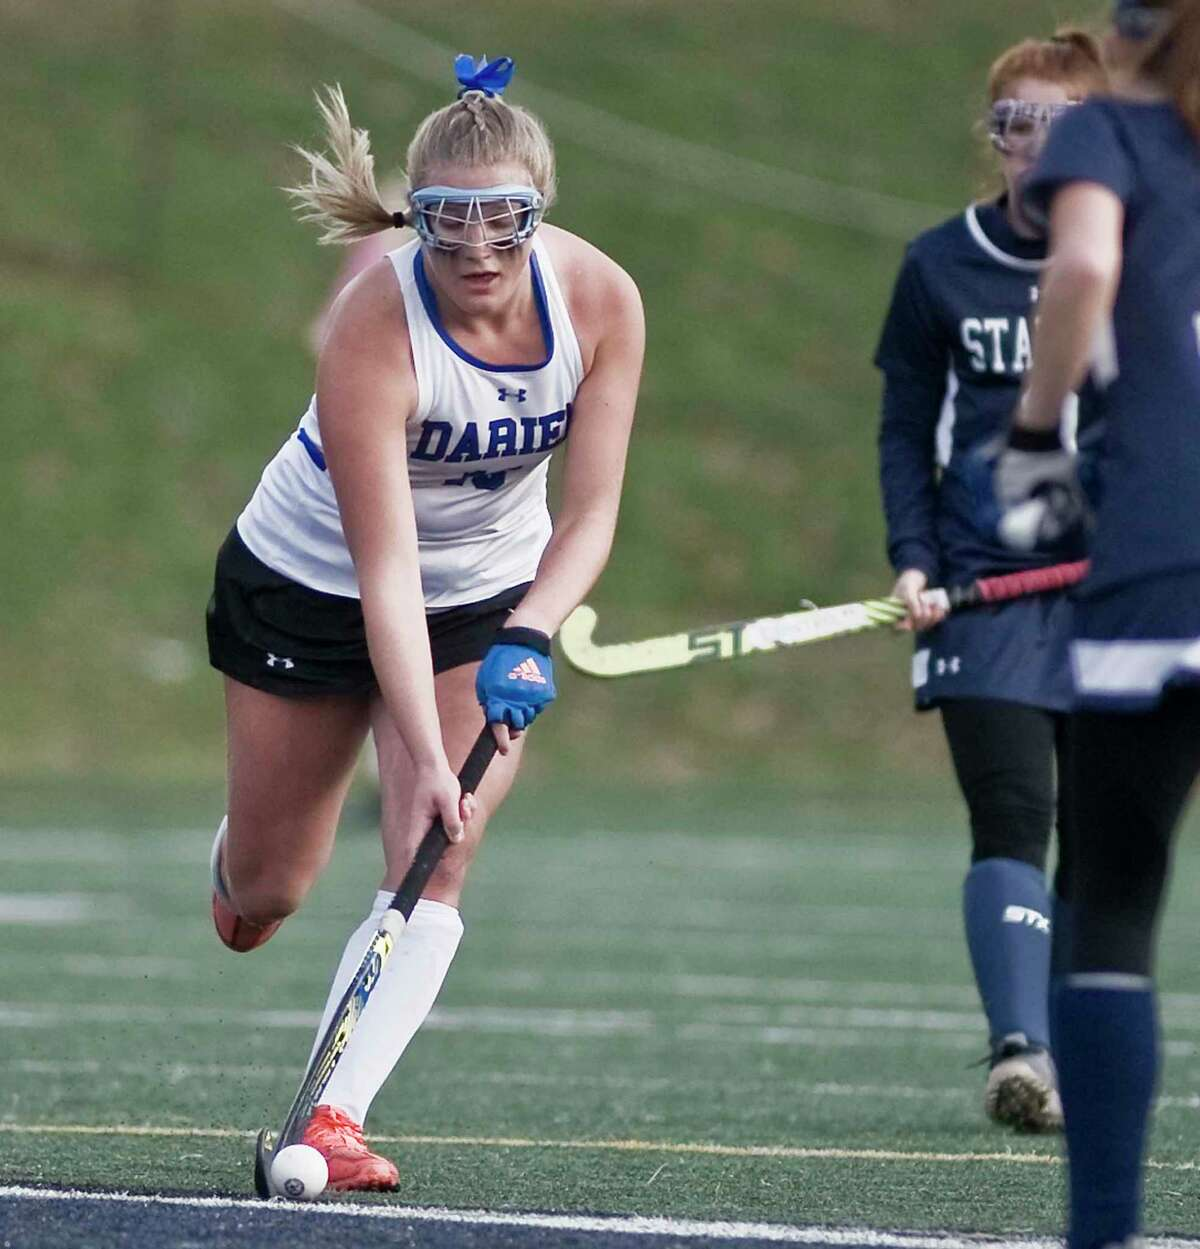 Darien High School's Charlotte Domittner moves the ball up the field in the Class L state field hockey championship game against Staples High School, played at Wethersfield High School. Saturday, Nov. 23, 2019